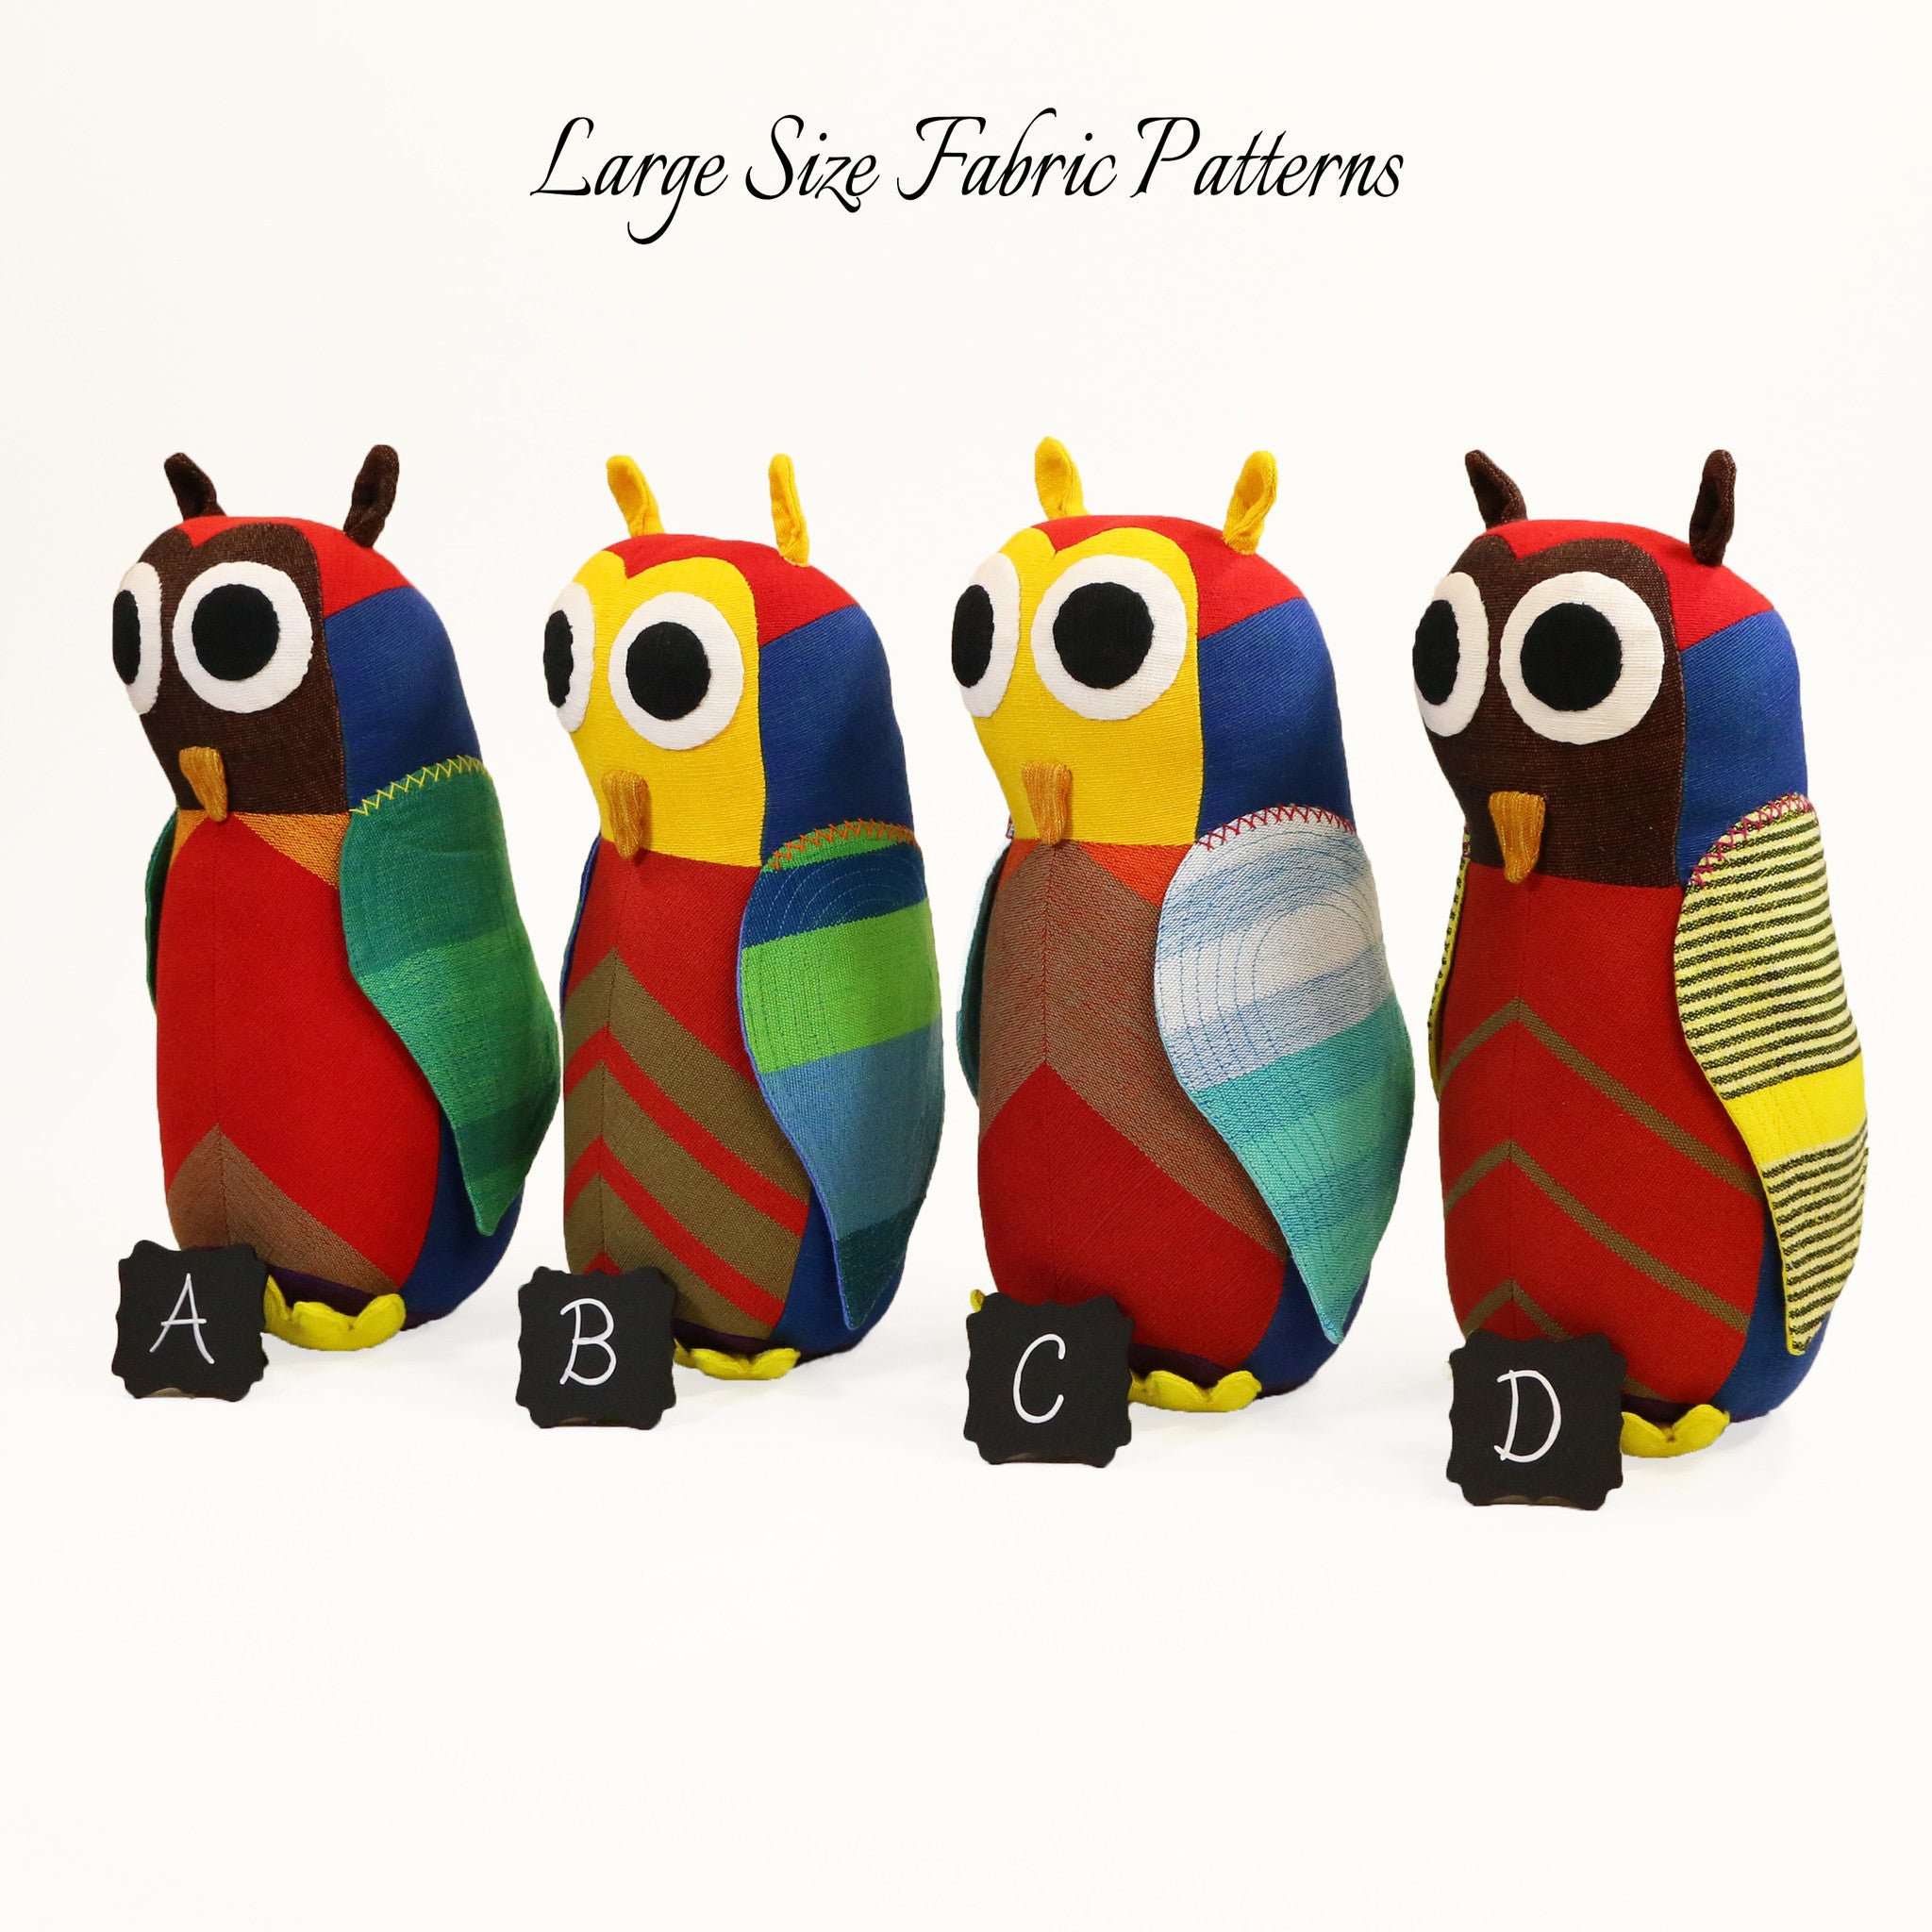 Harold, the Owl – large size fabric patterns shown